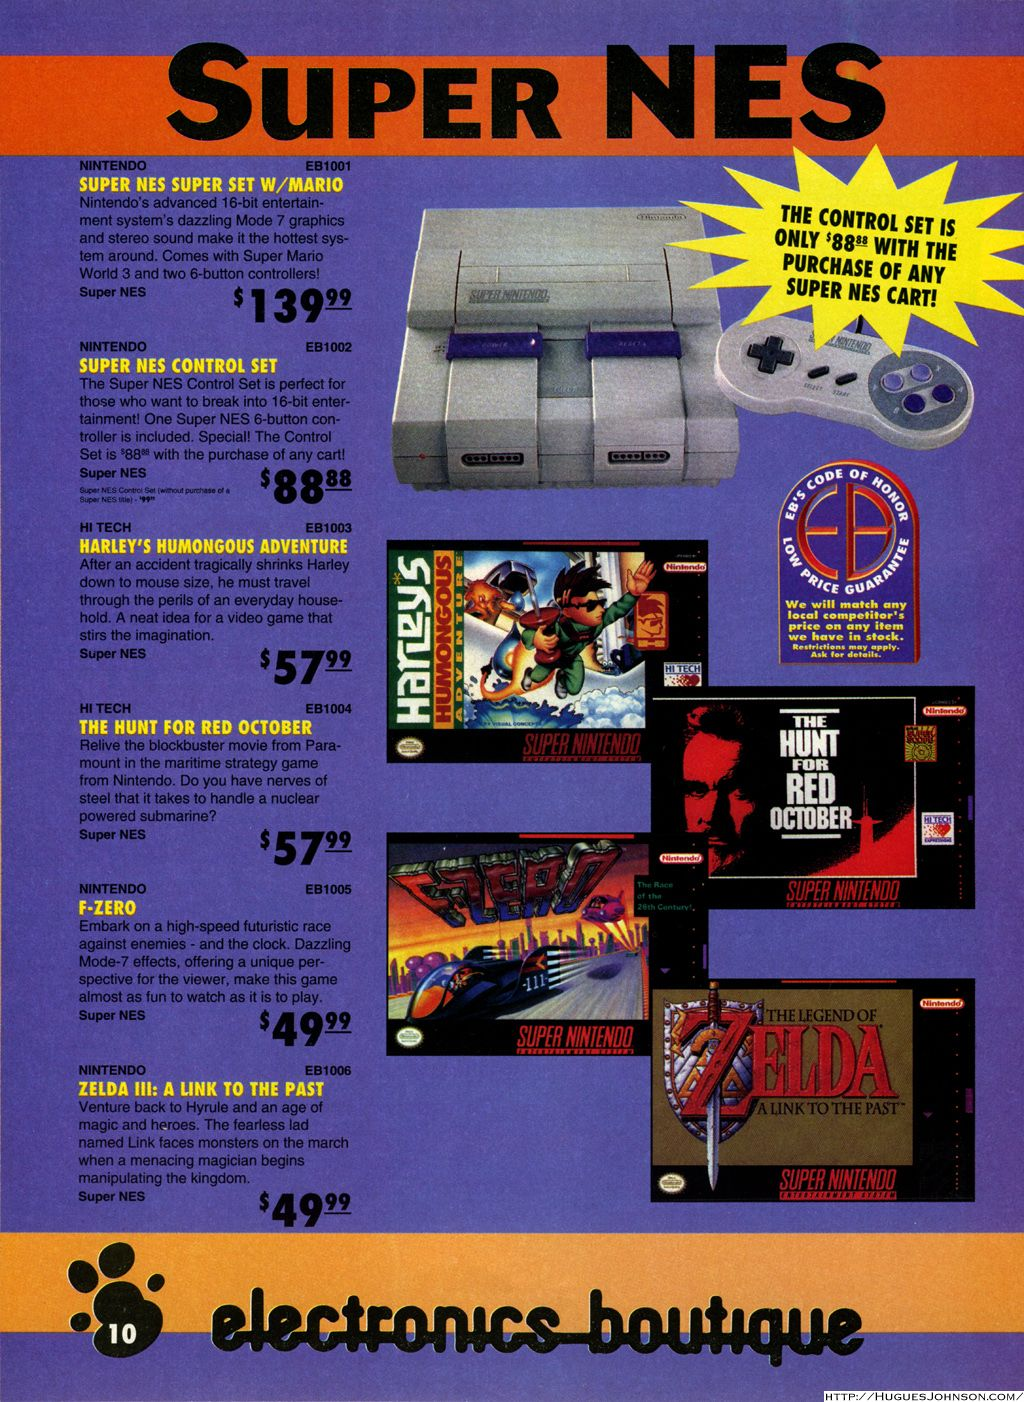 Snes Vintage Ad Yup 140 Clams For An Snes Back In The